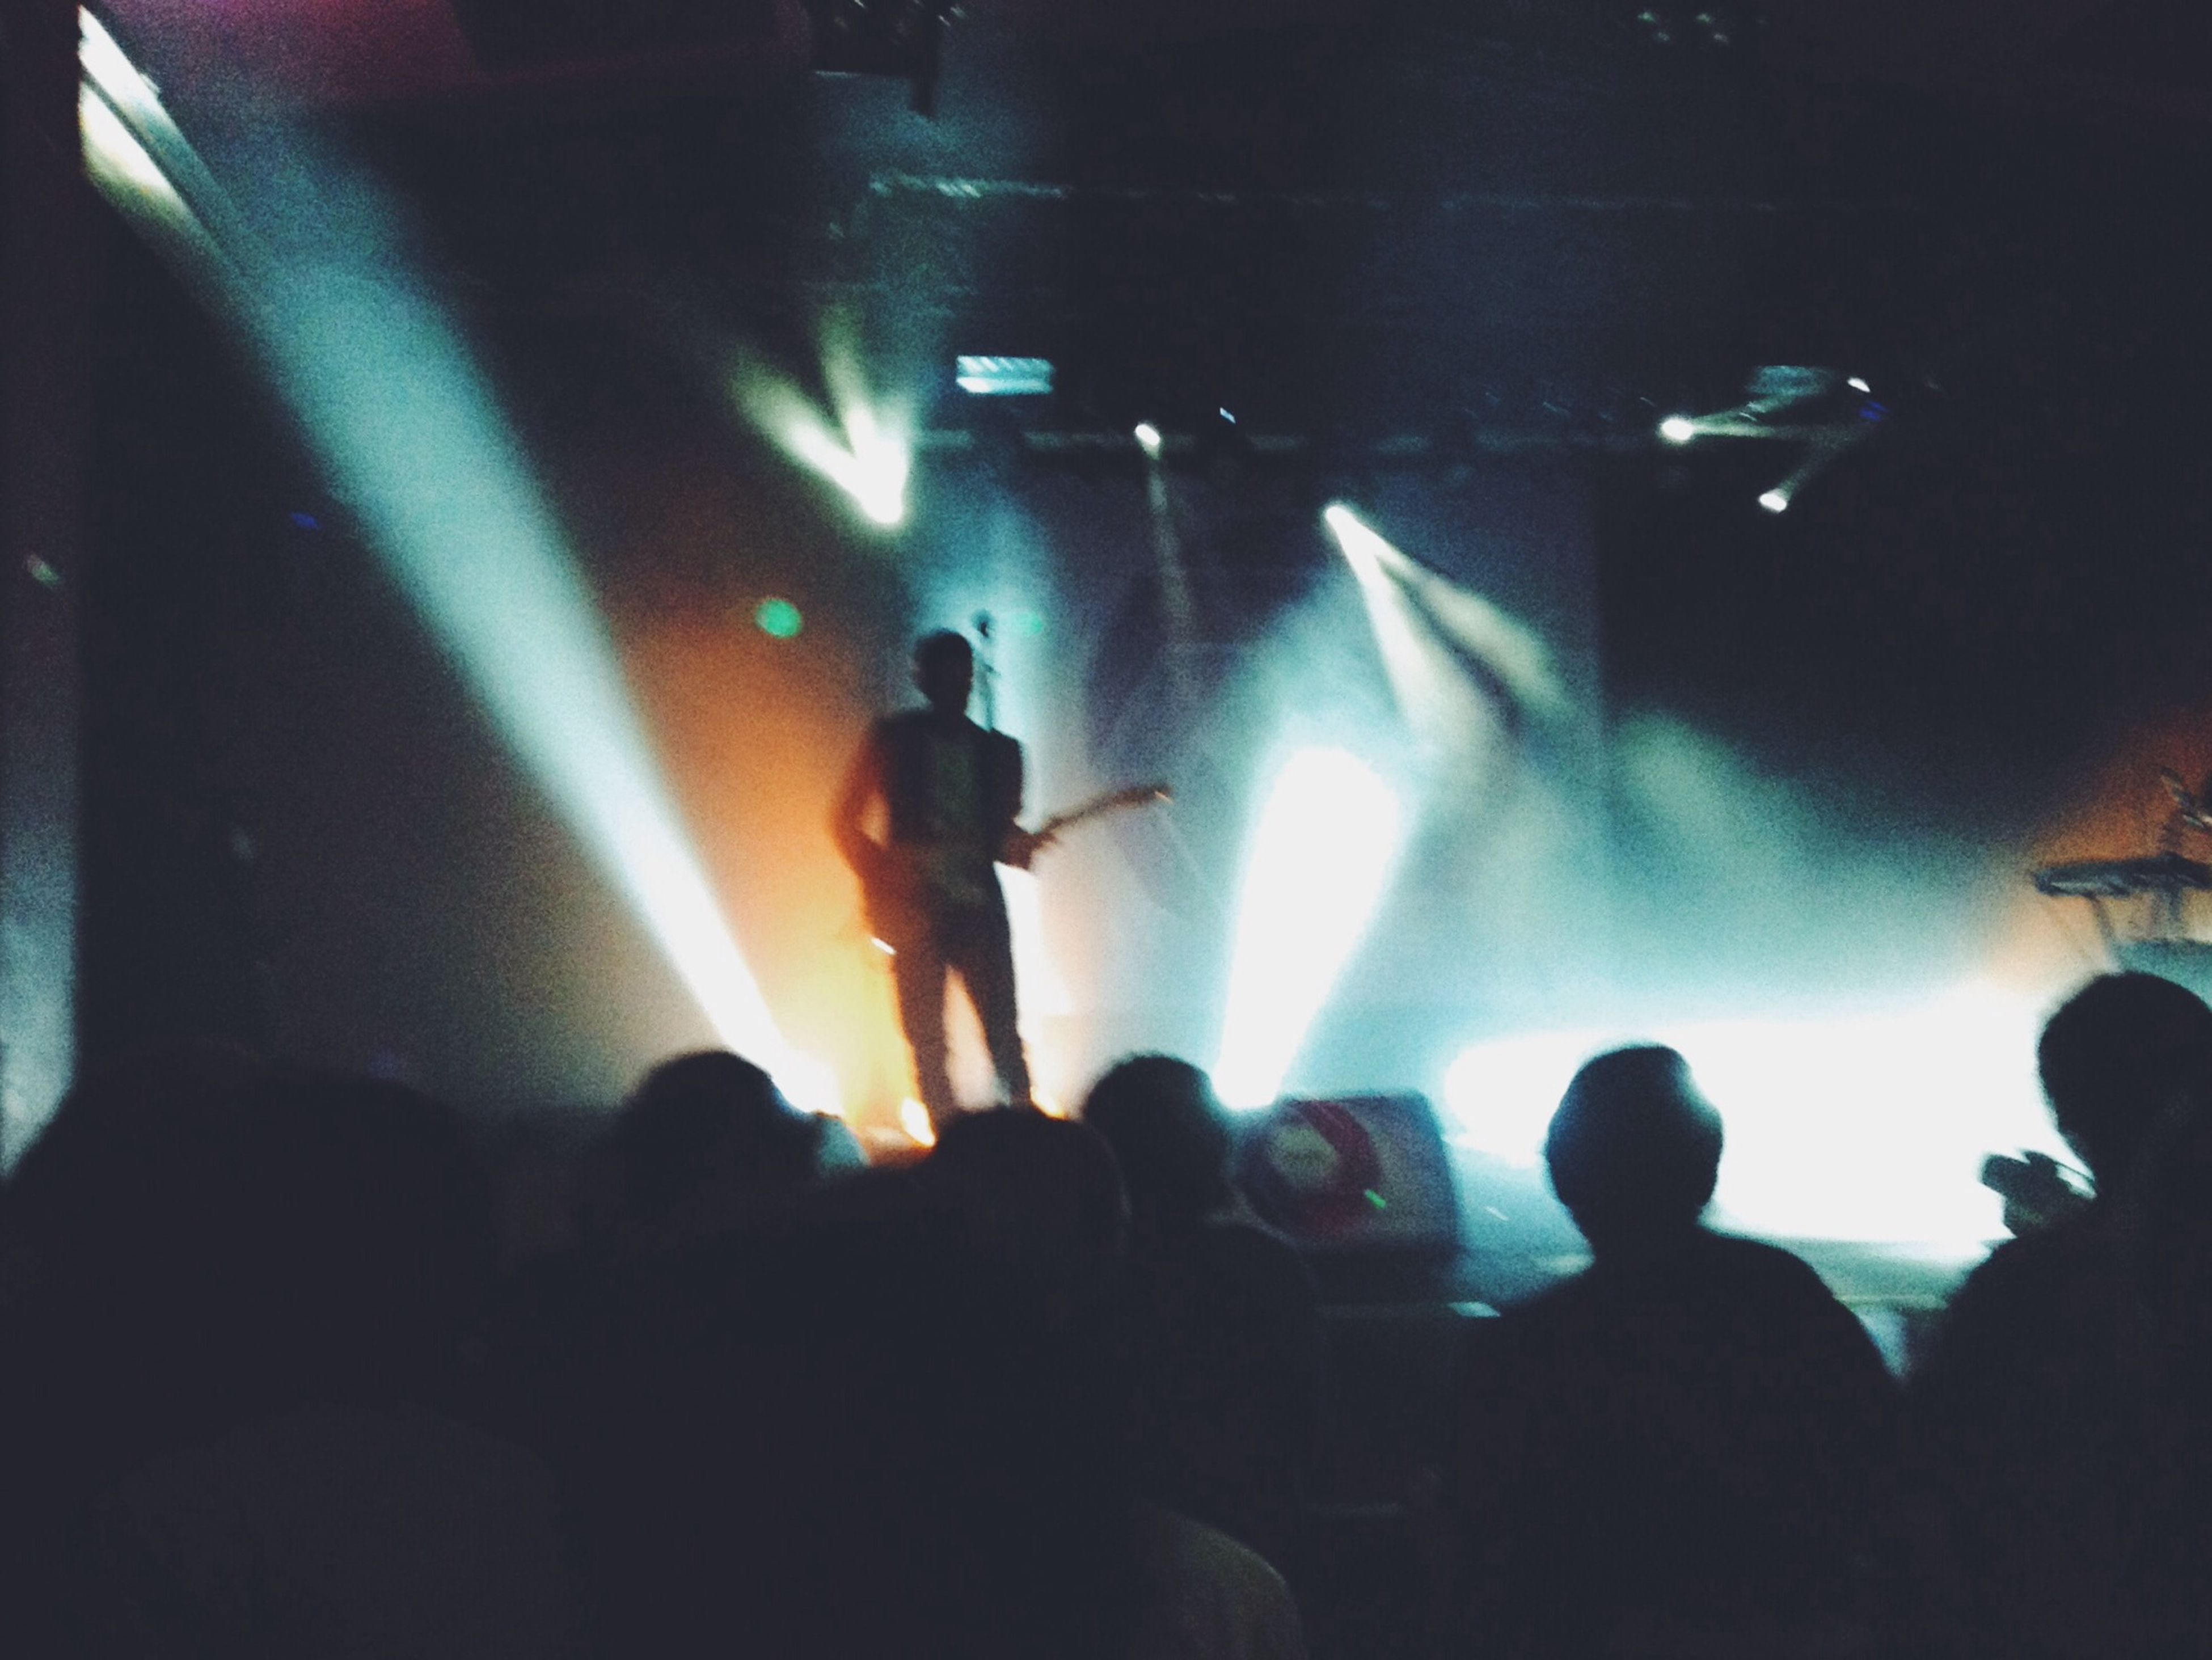 indoors, large group of people, men, lifestyles, illuminated, music, leisure activity, nightlife, person, arts culture and entertainment, enjoyment, crowd, performance, stage - performance space, concert, silhouette, togetherness, light - natural phenomenon